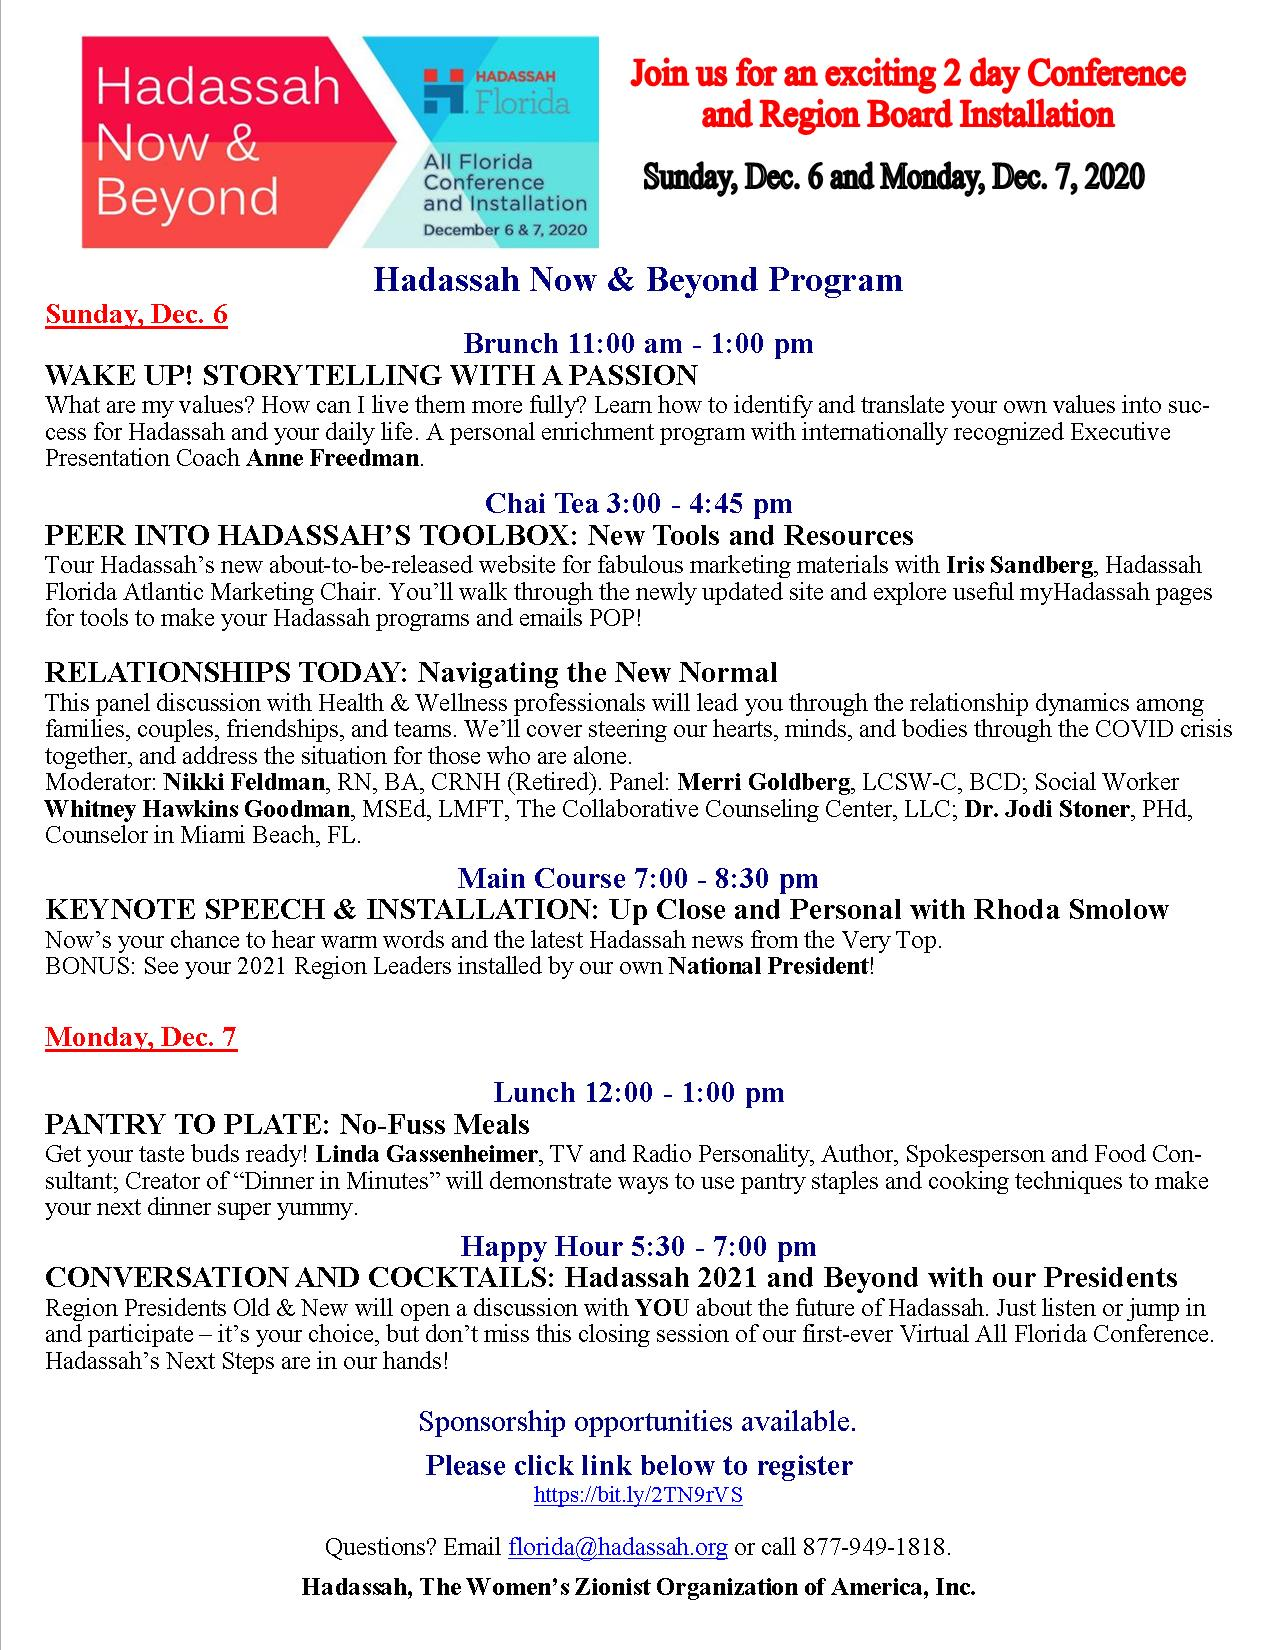 Hadassah And Beyond 2 Day Conference Installation Promo Flyer